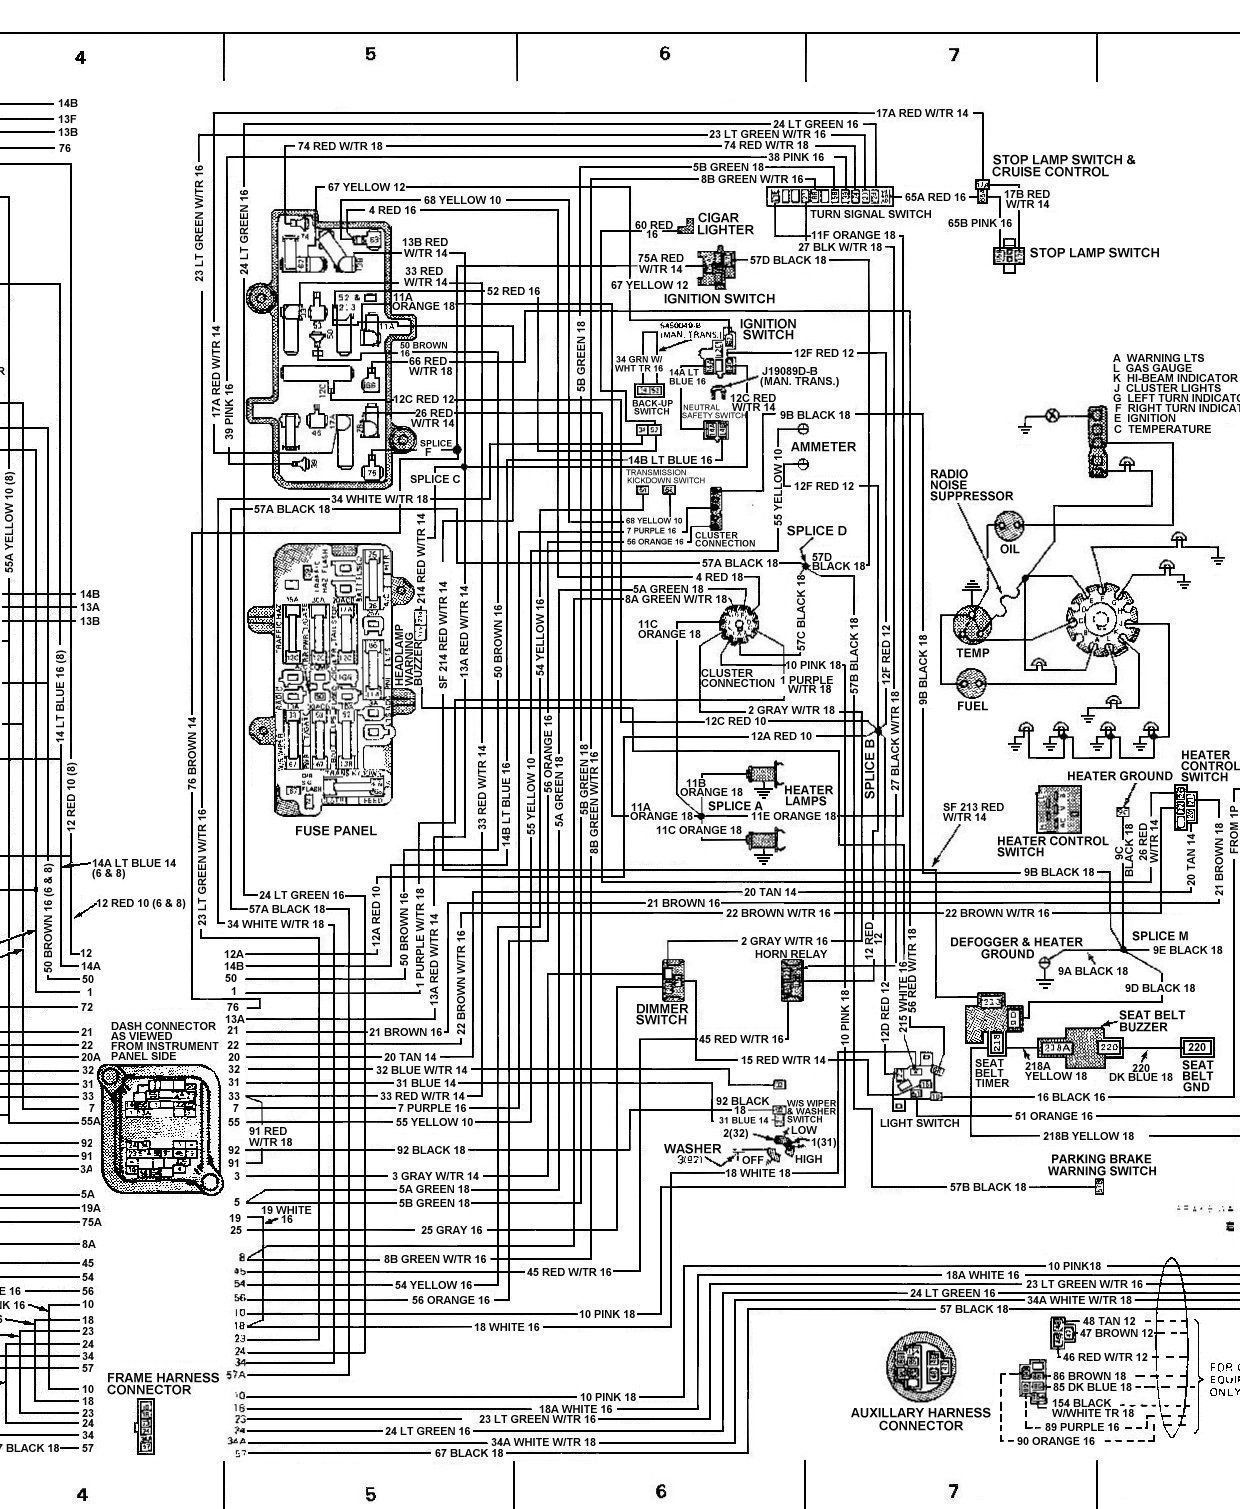 century portable heater wiring diagram with Electrical Wiring Diagram 2003 Vw Jetta Volkswagen on Portable Heaters Wiring Diagrams further Cal Spa Wiring Diagram also Delonghi Oil Filled Heaters Wiring Diagram in addition Gx1ew Y4UAU likewise Refrigeration Condensing Unit Wiring Diagram Kold Pack.